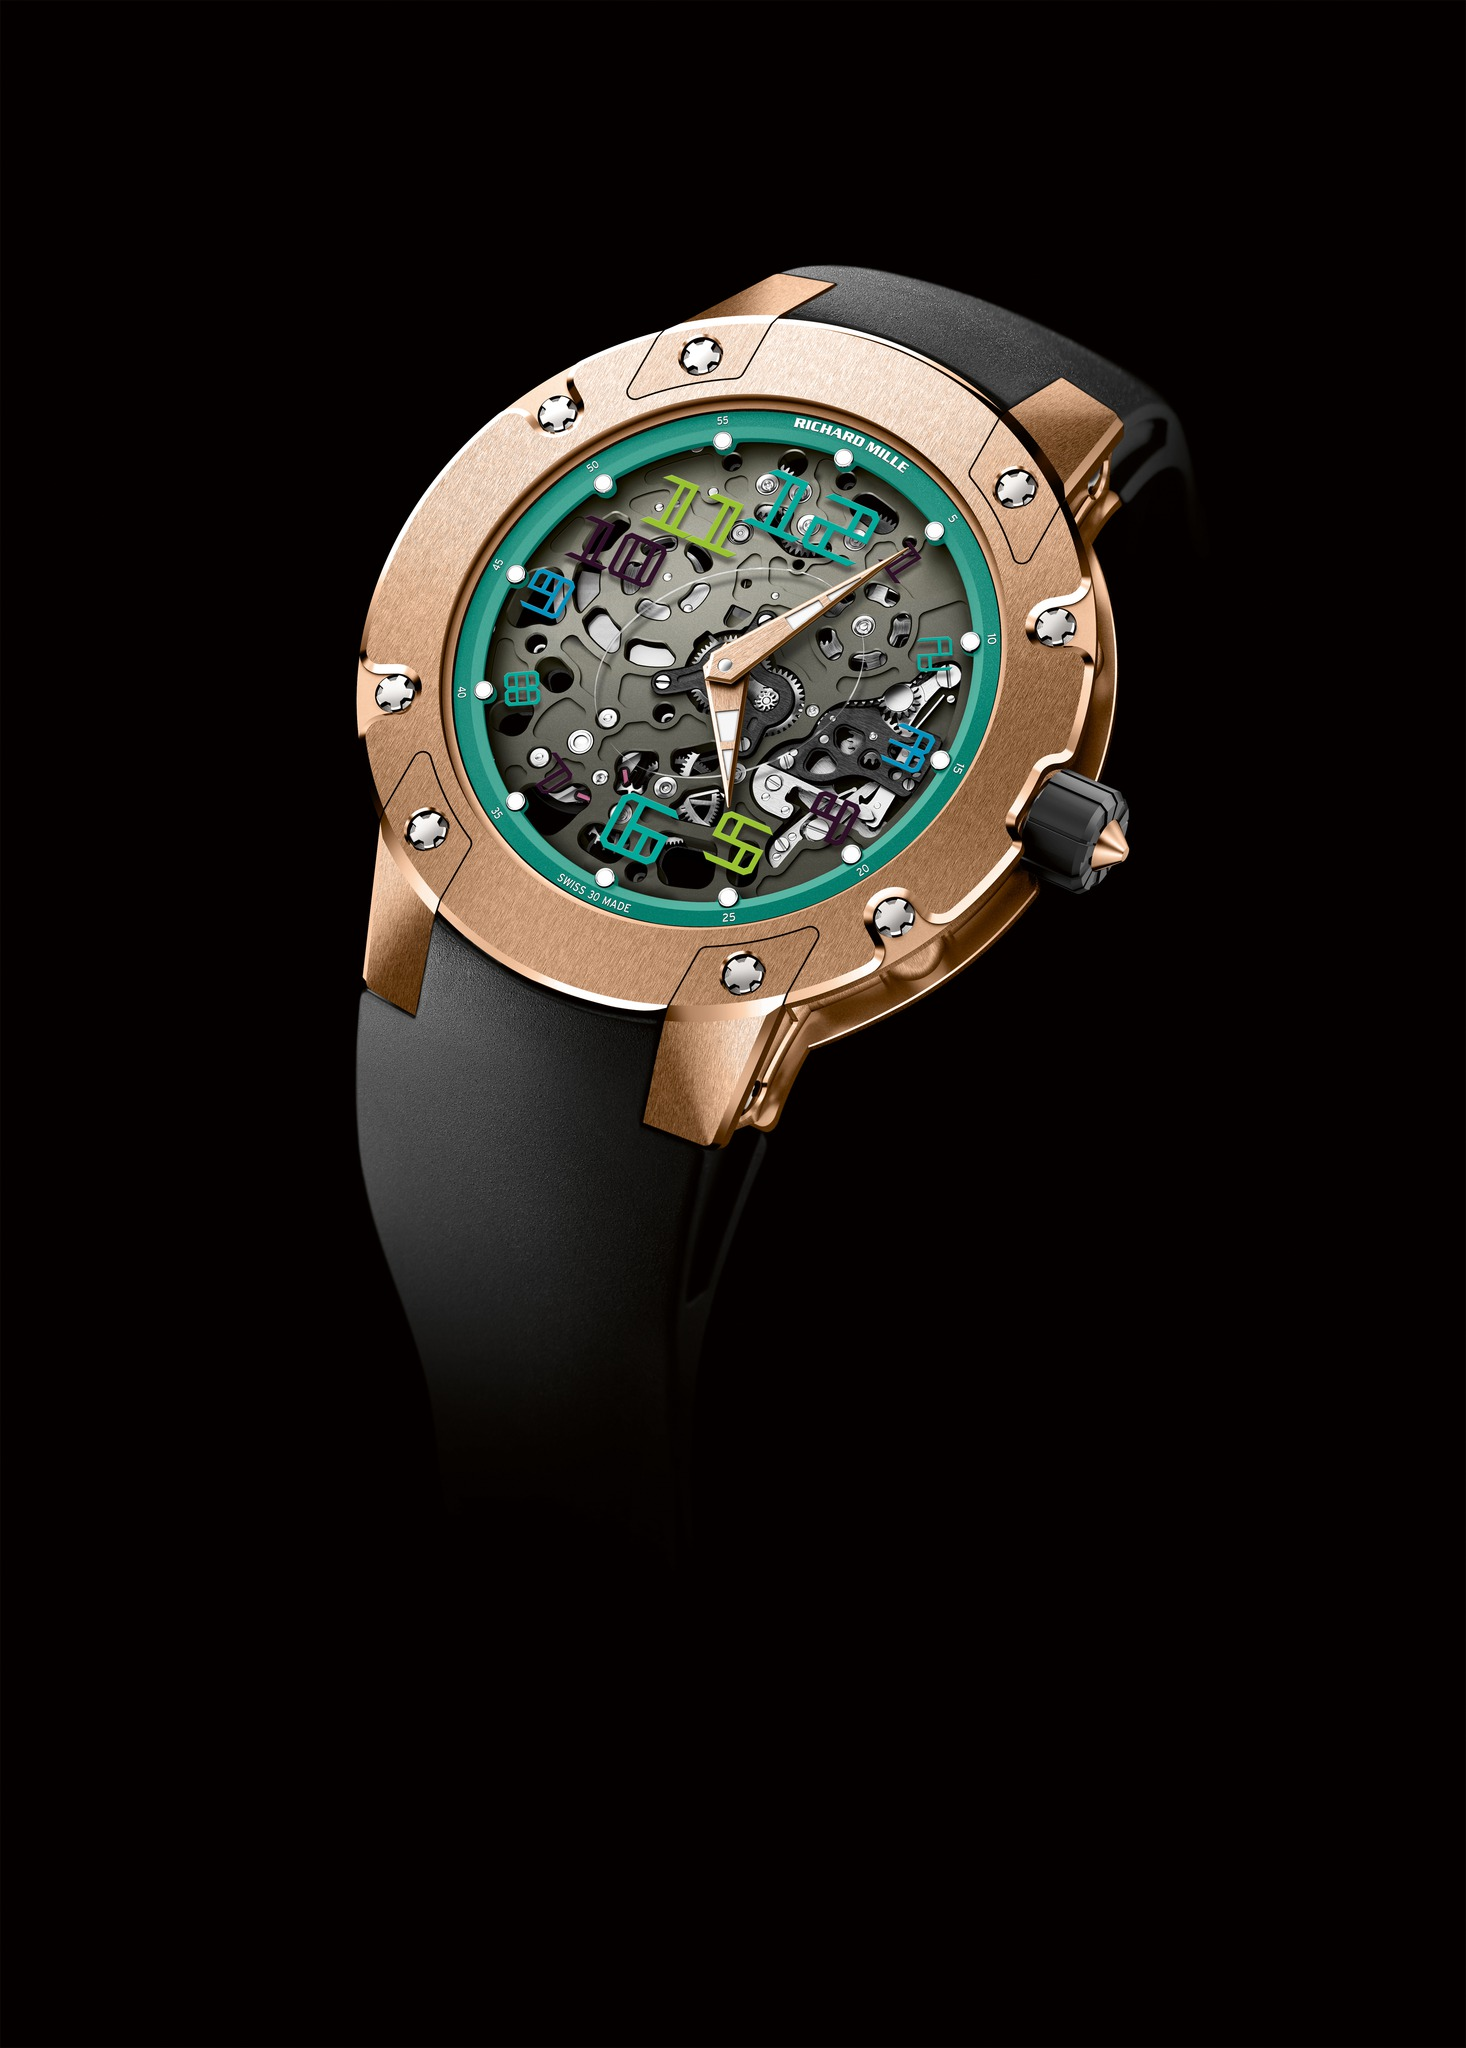 Replica Richard Mille RM 033 Sentebale Red Gold Watch